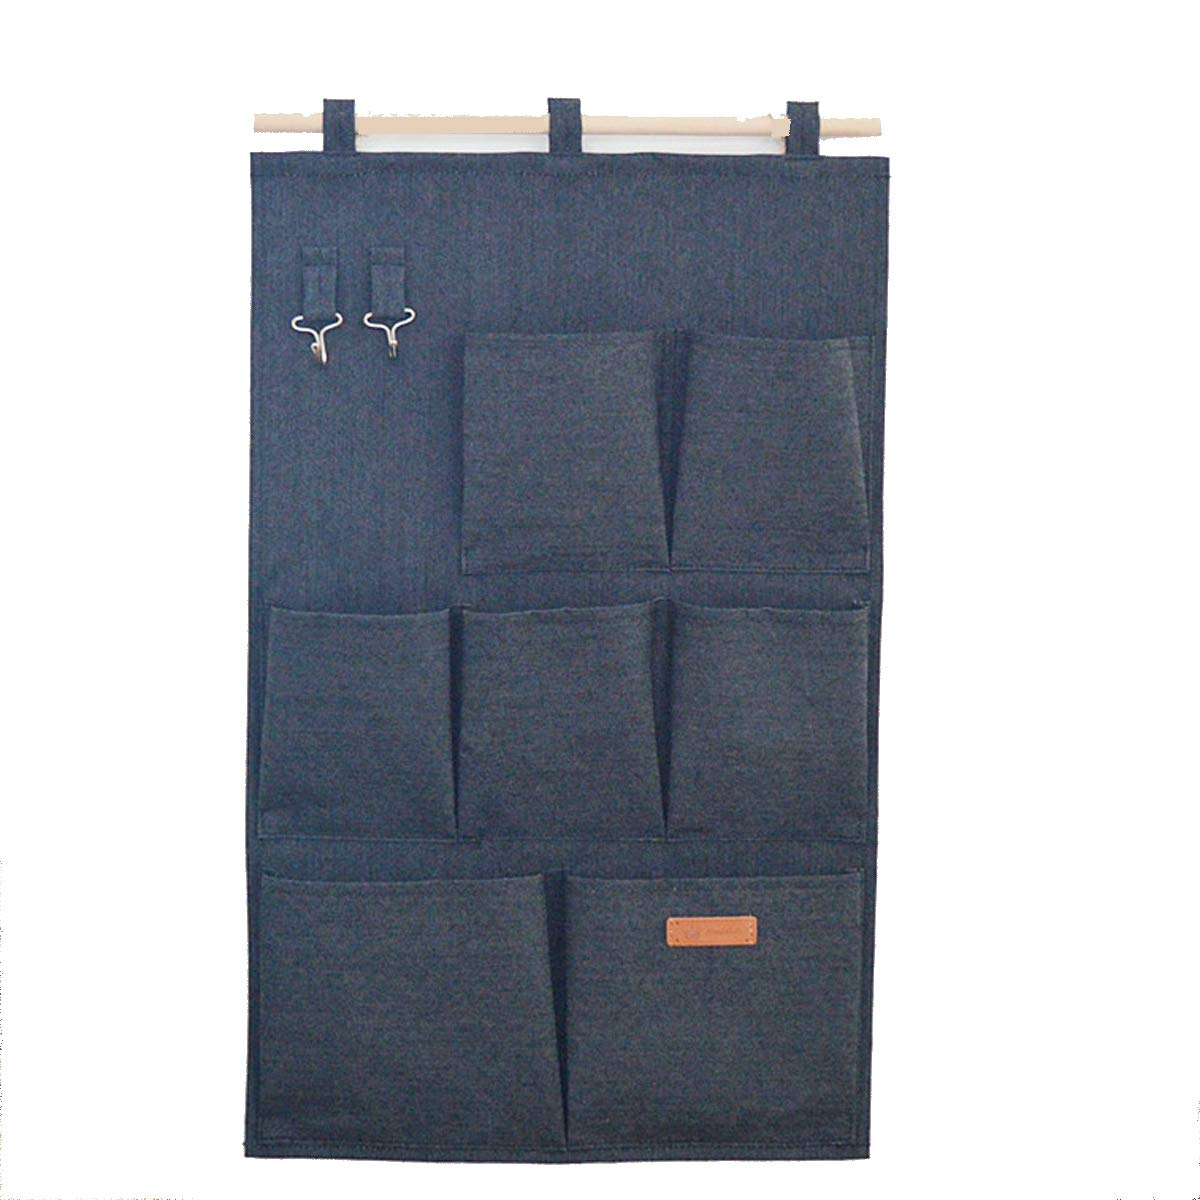 SMART HOME CHEF Denim Fabric Over Wall Door Closet Window Hanging Storage Case Organizer Bag 7-Pocket Wall Hanging Multipurpose Accessory Organizer with 2 Hooks